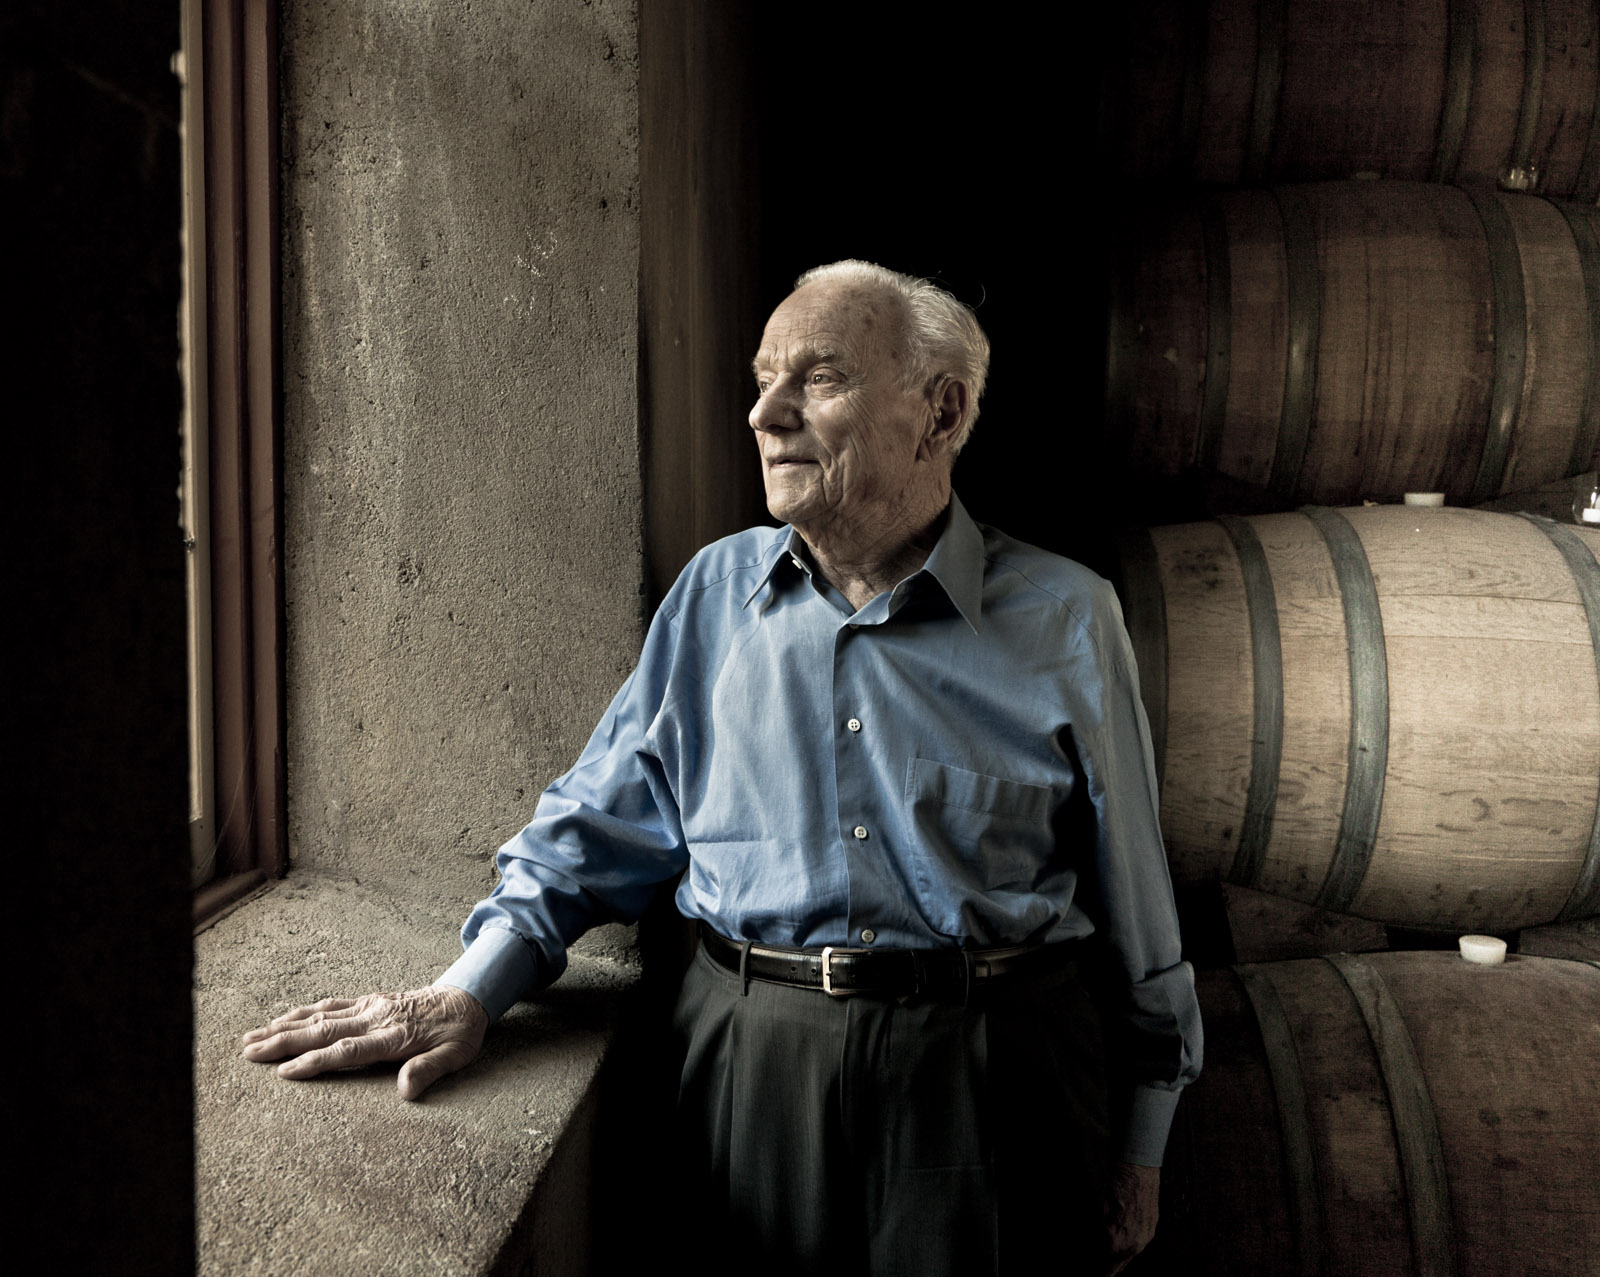 Peter Mondavi at the Red Cellar: Rocco Ceselin Photographer in Napa Valley